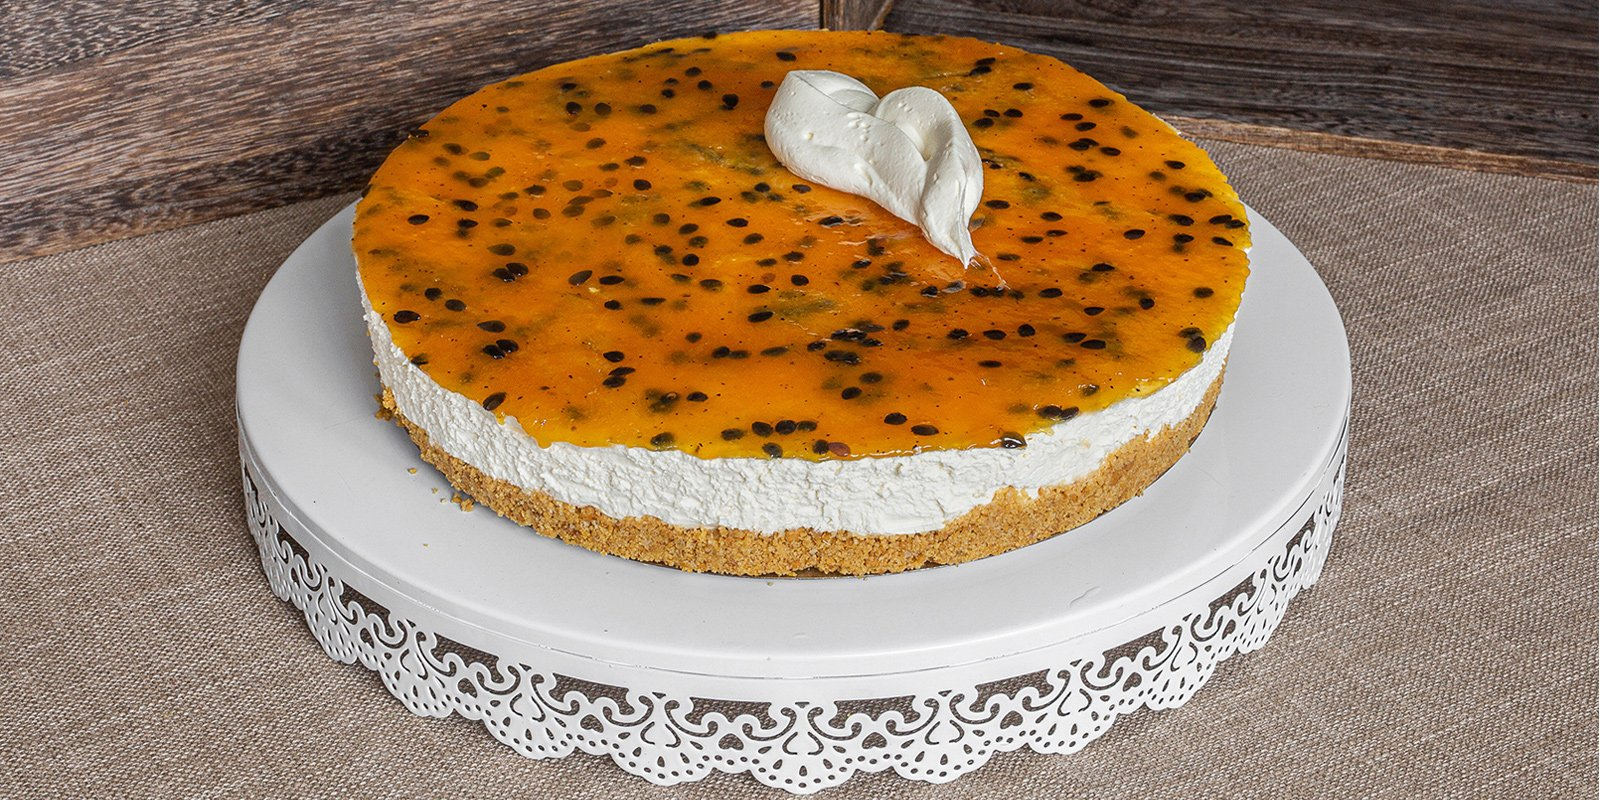 A large Cheesecake